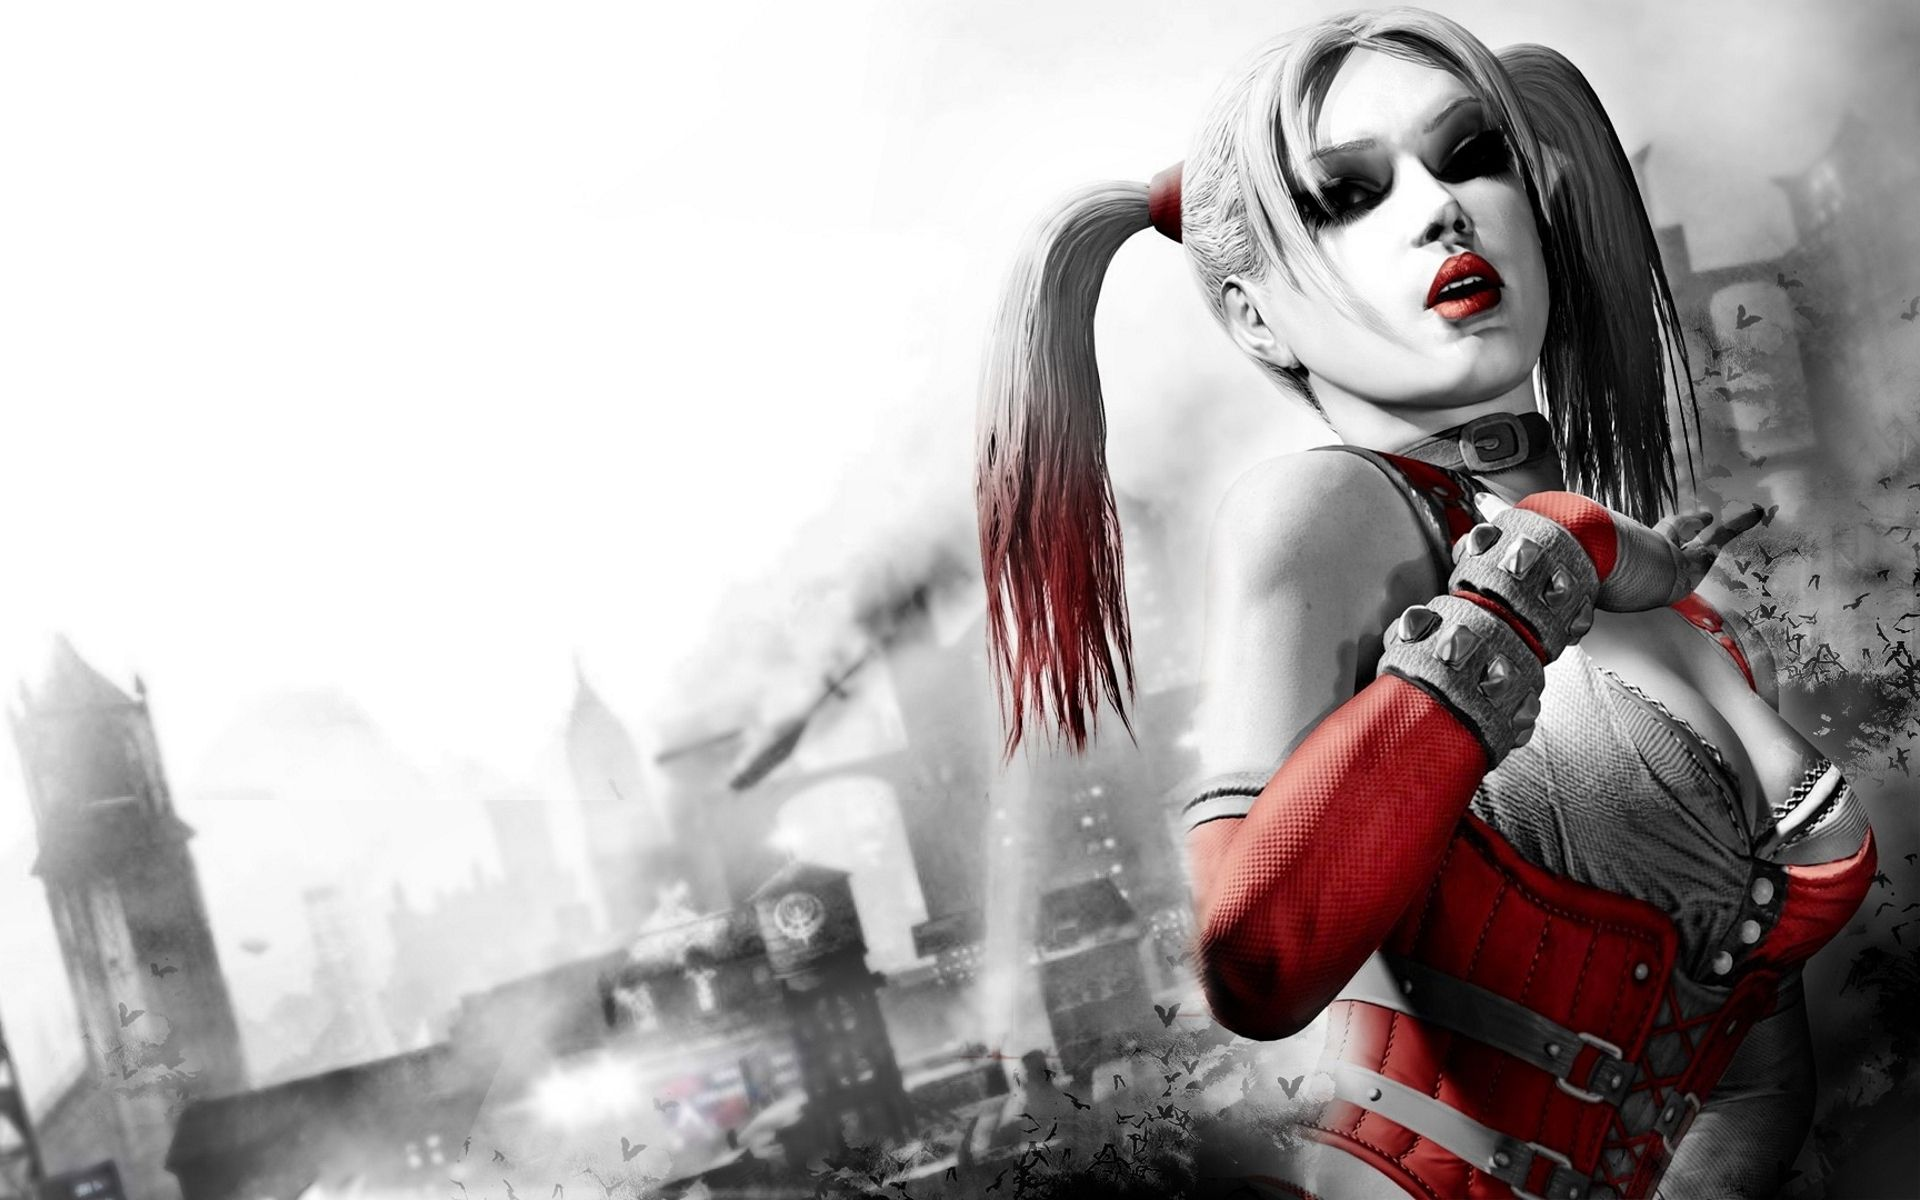 Awesome Harley Quinn Wallpaper Hd For Desktop Wallpapers With Harley